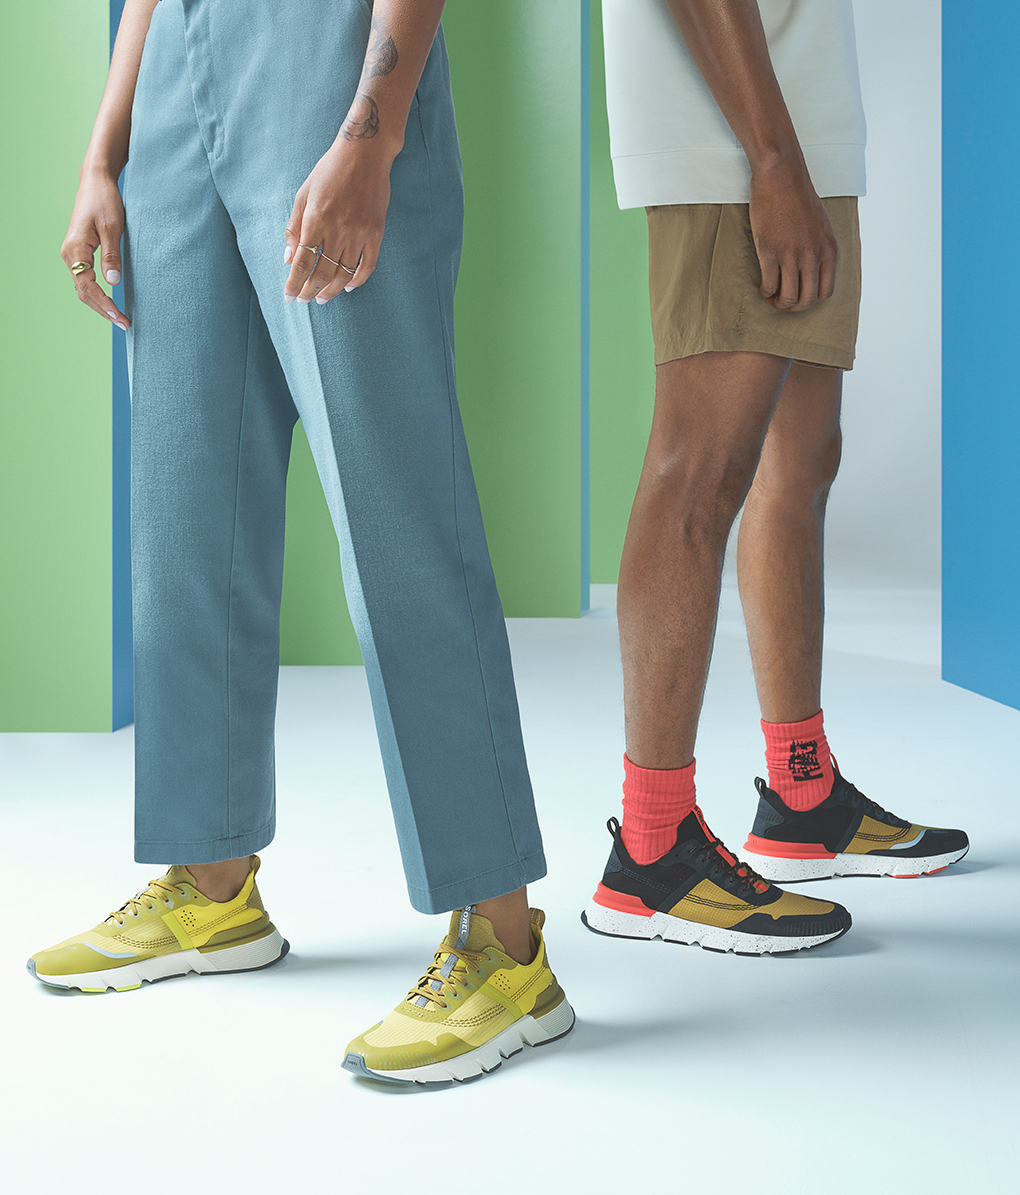 Thigh down image of people wearing new Kinetic Rush sneakers